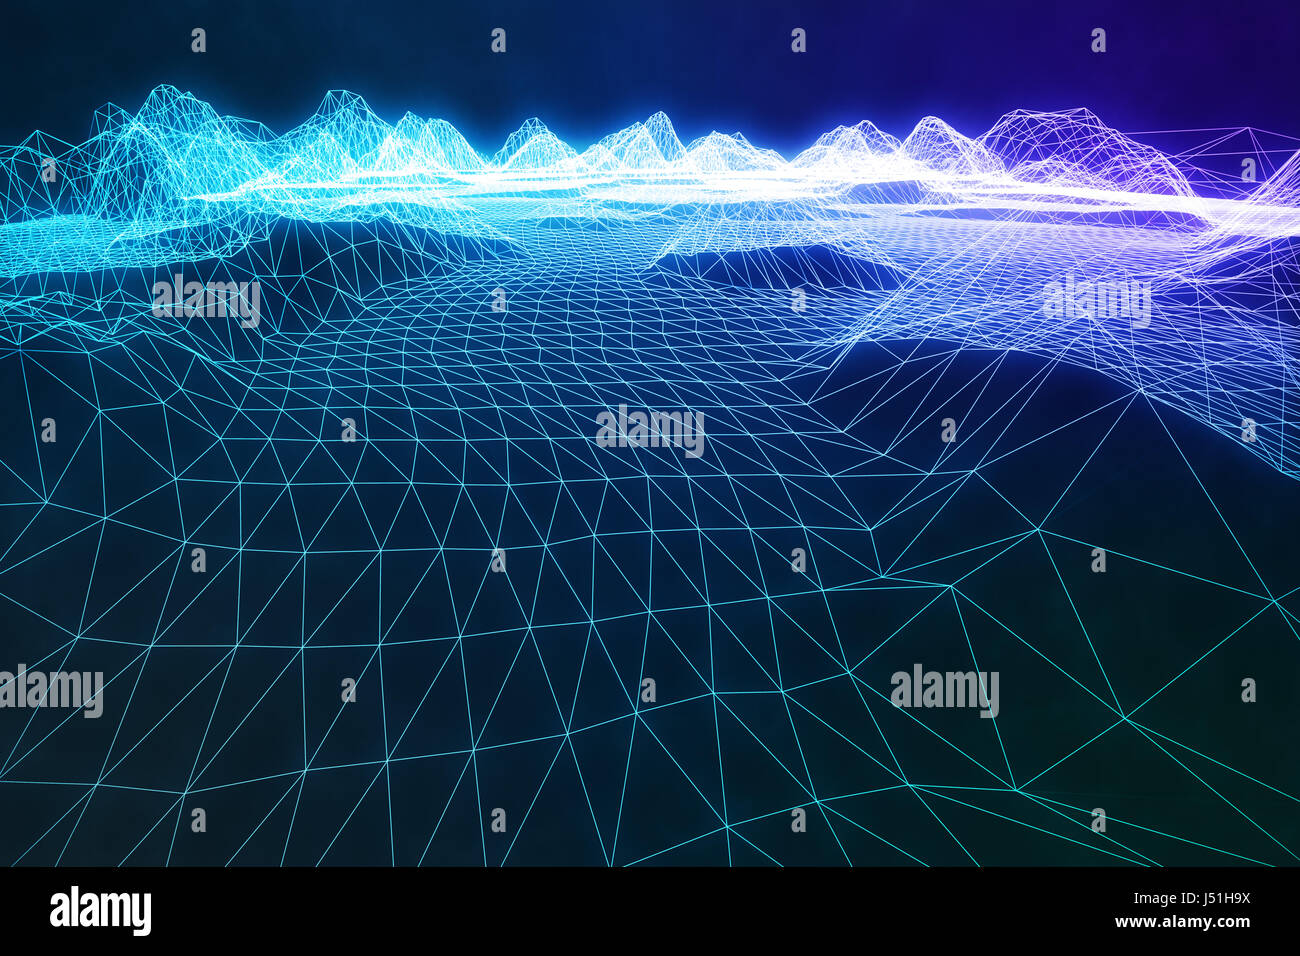 3D Illustration Abstract Digital Wireframe Landscape. Cyberspace Stock Photo: 140791782